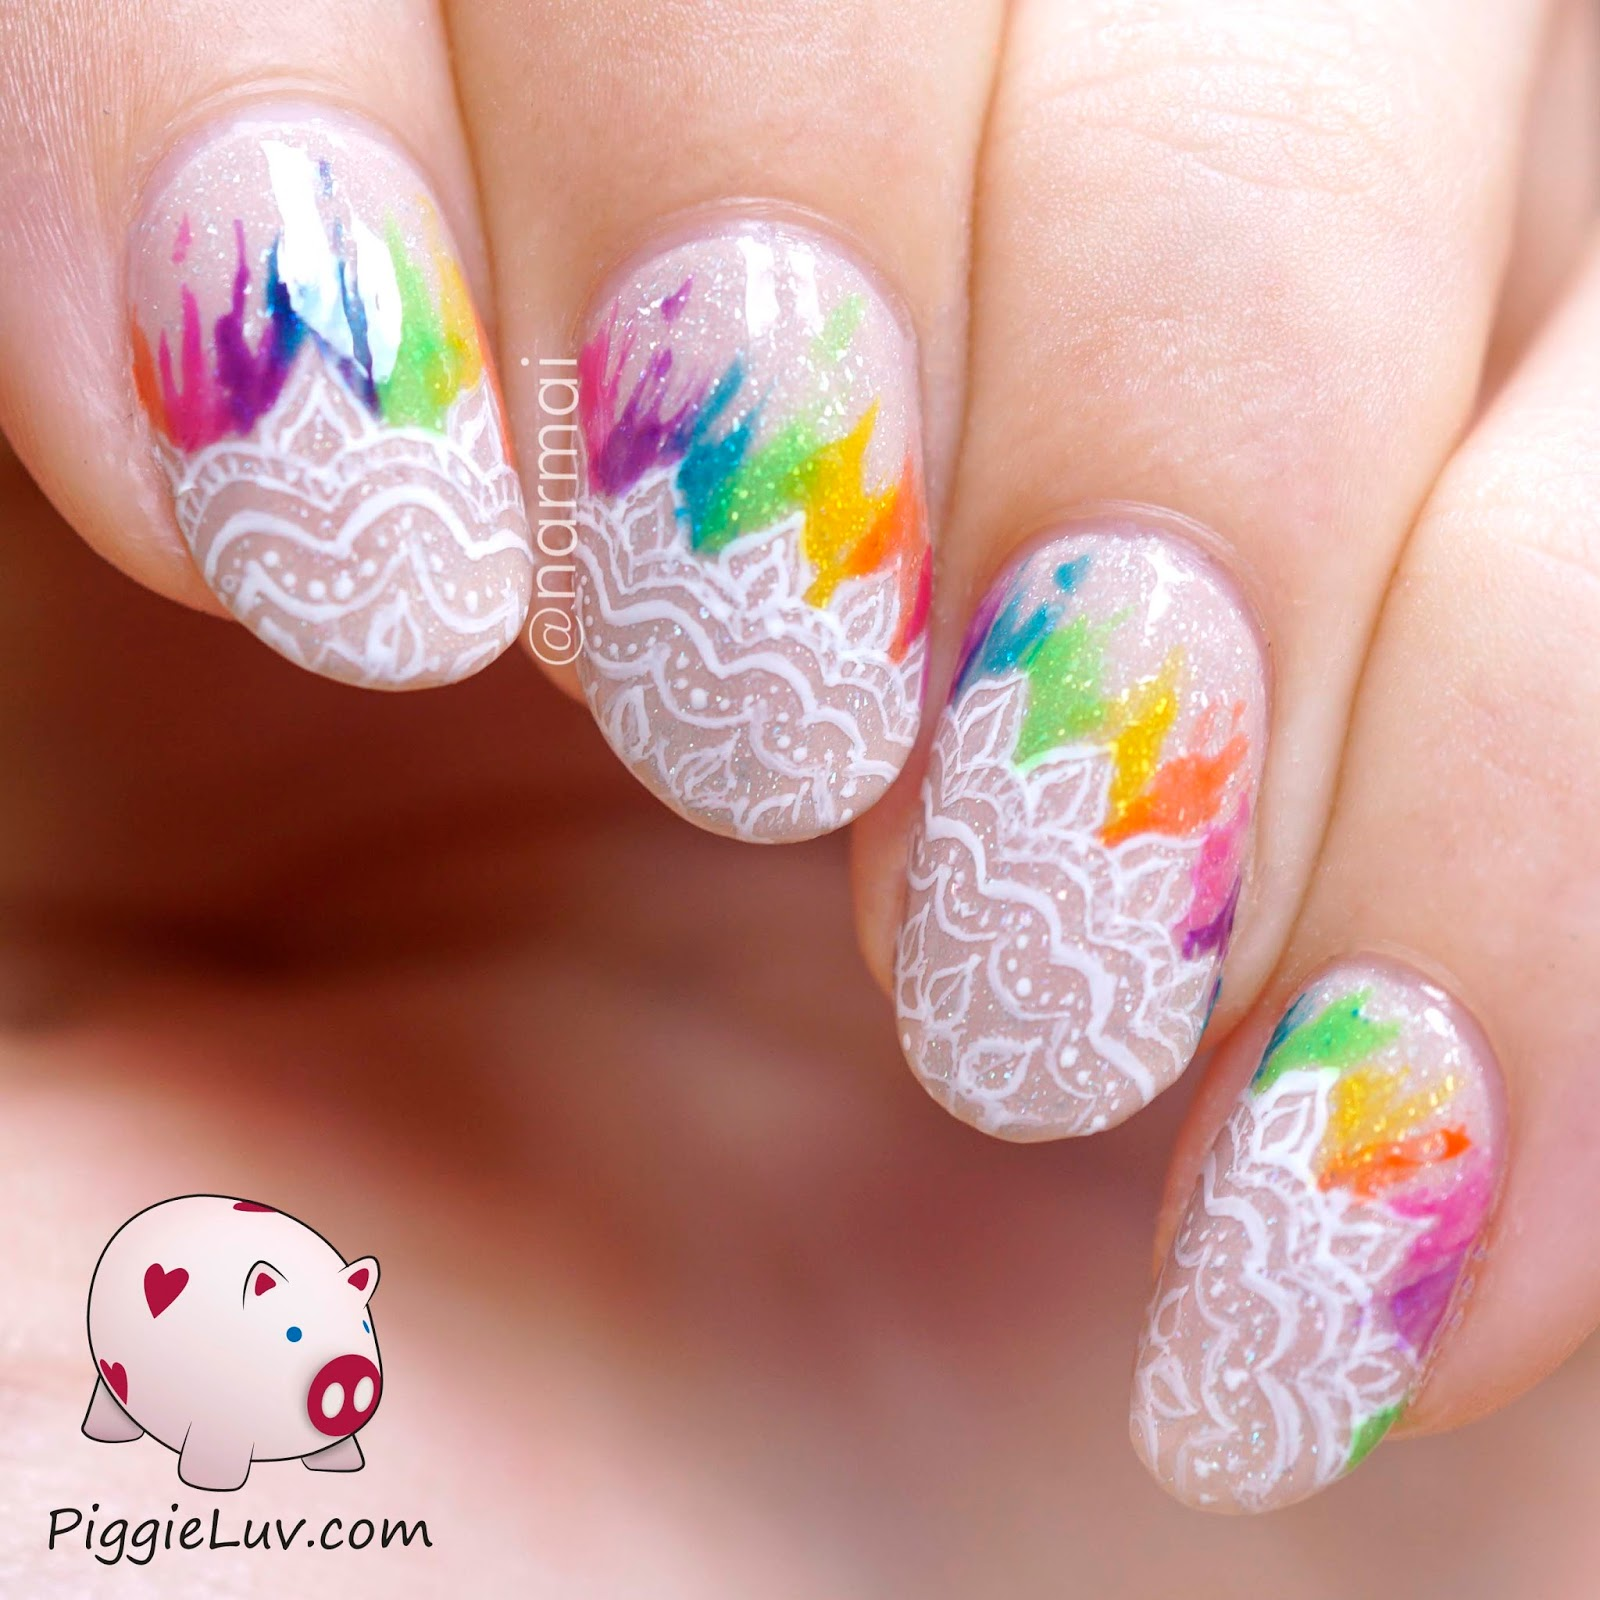 Colorful Nail Designs: PiggieLuv: Rainbow Lace Bridal Style Nail Art With OPI